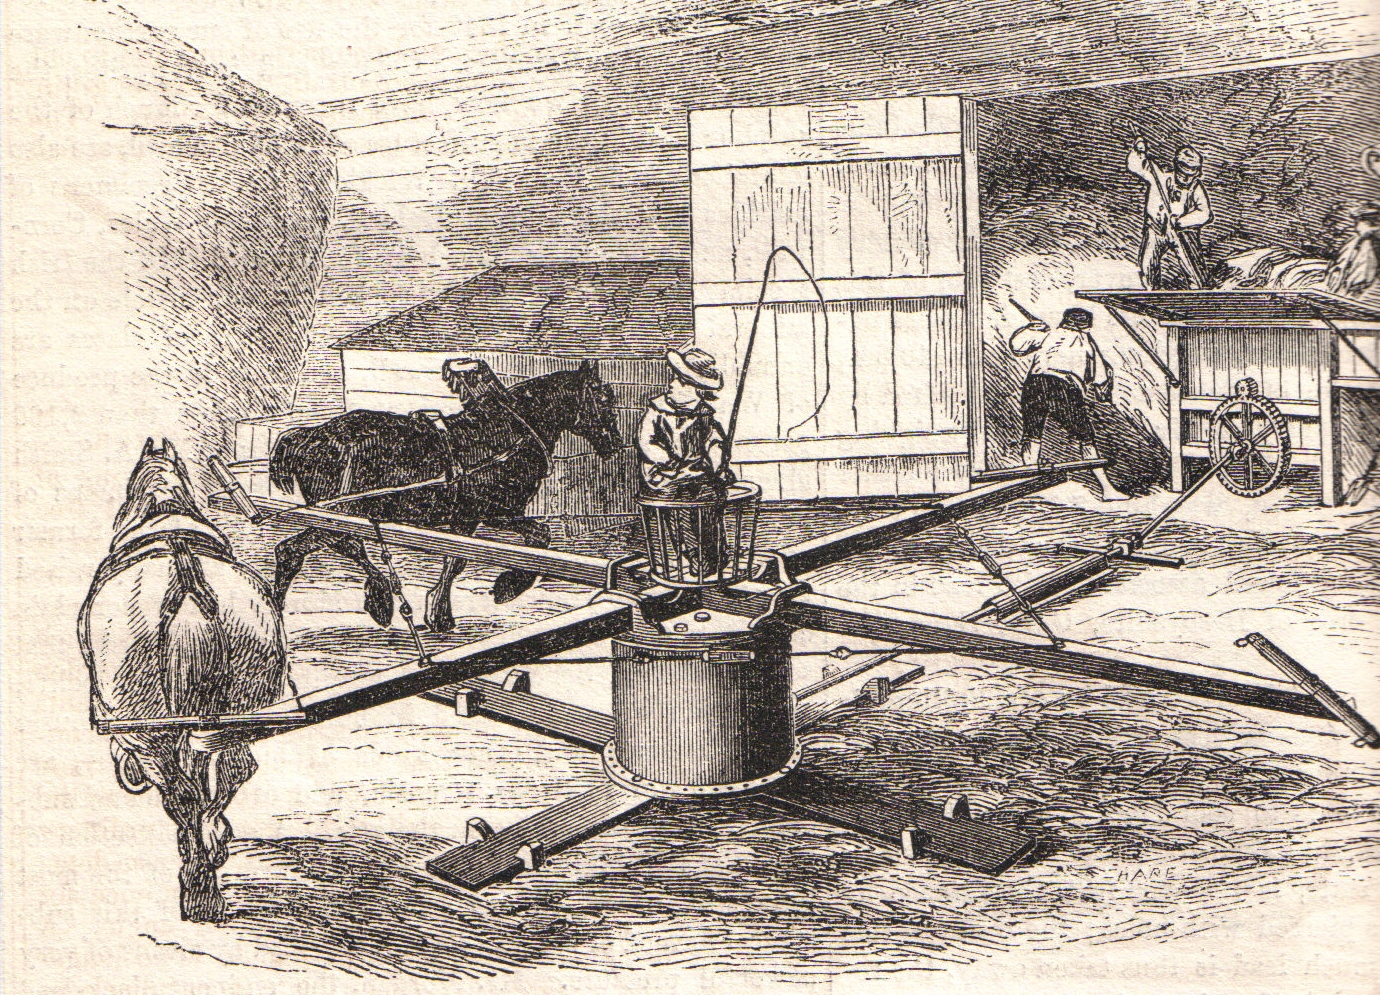 Engraving of a horse mill